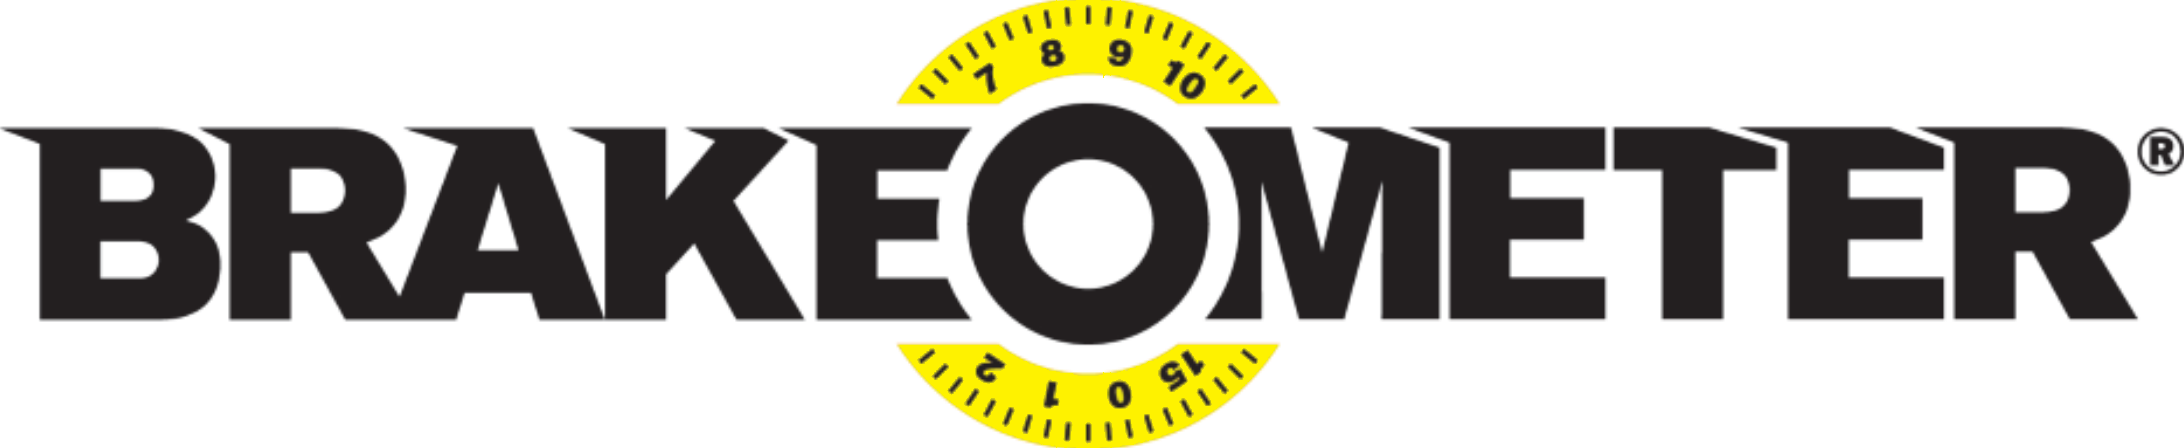 BOM Logo Clear - Yellow Yellow copy.png